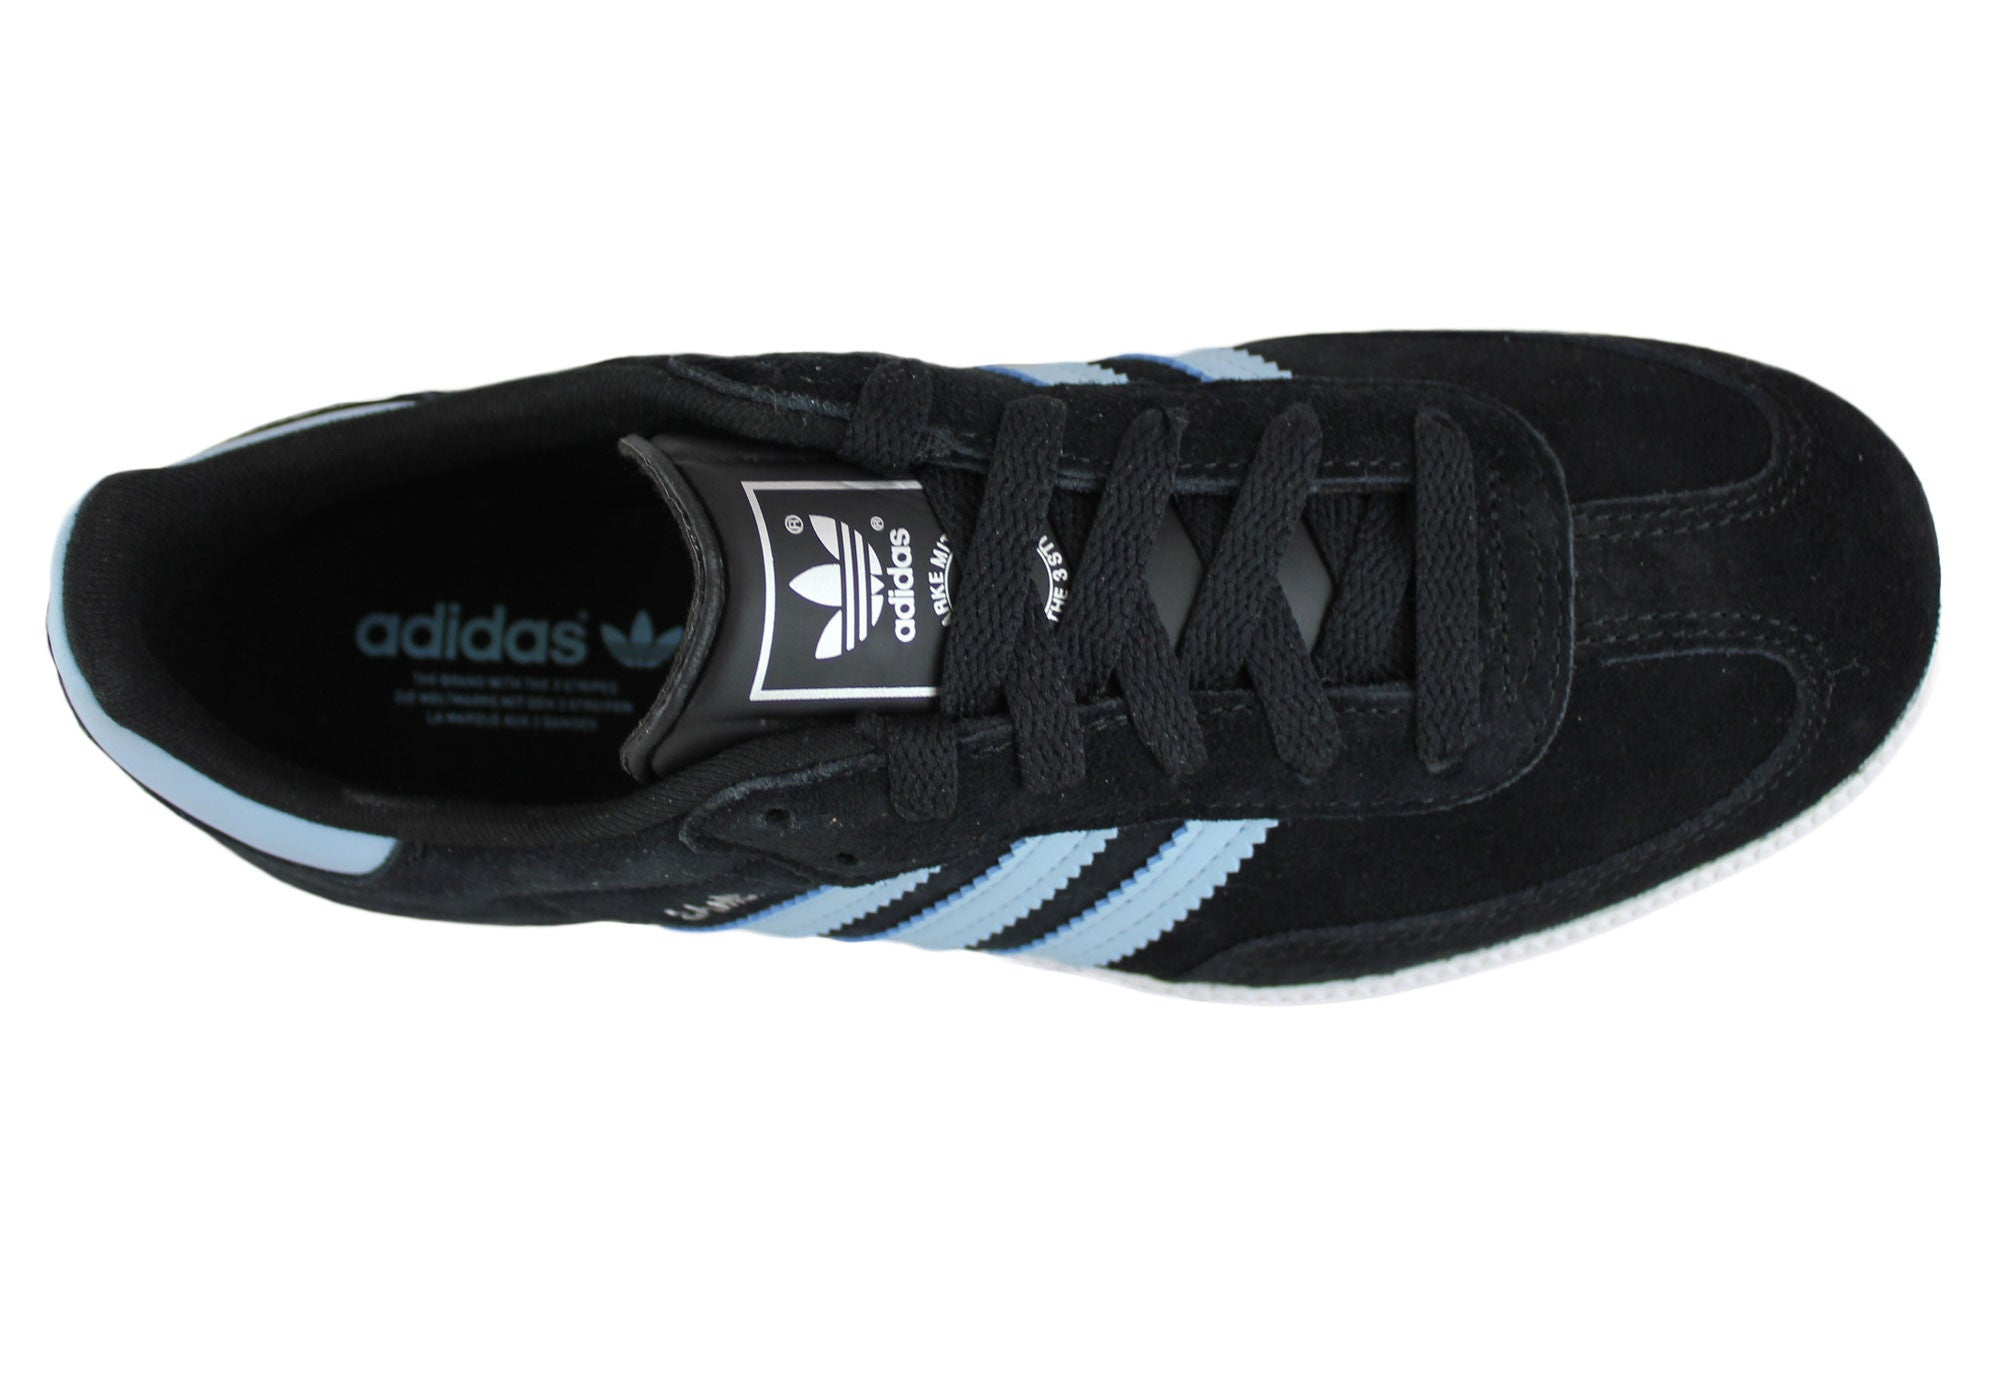 Adidas Originals Samba Womens Casual Shoes